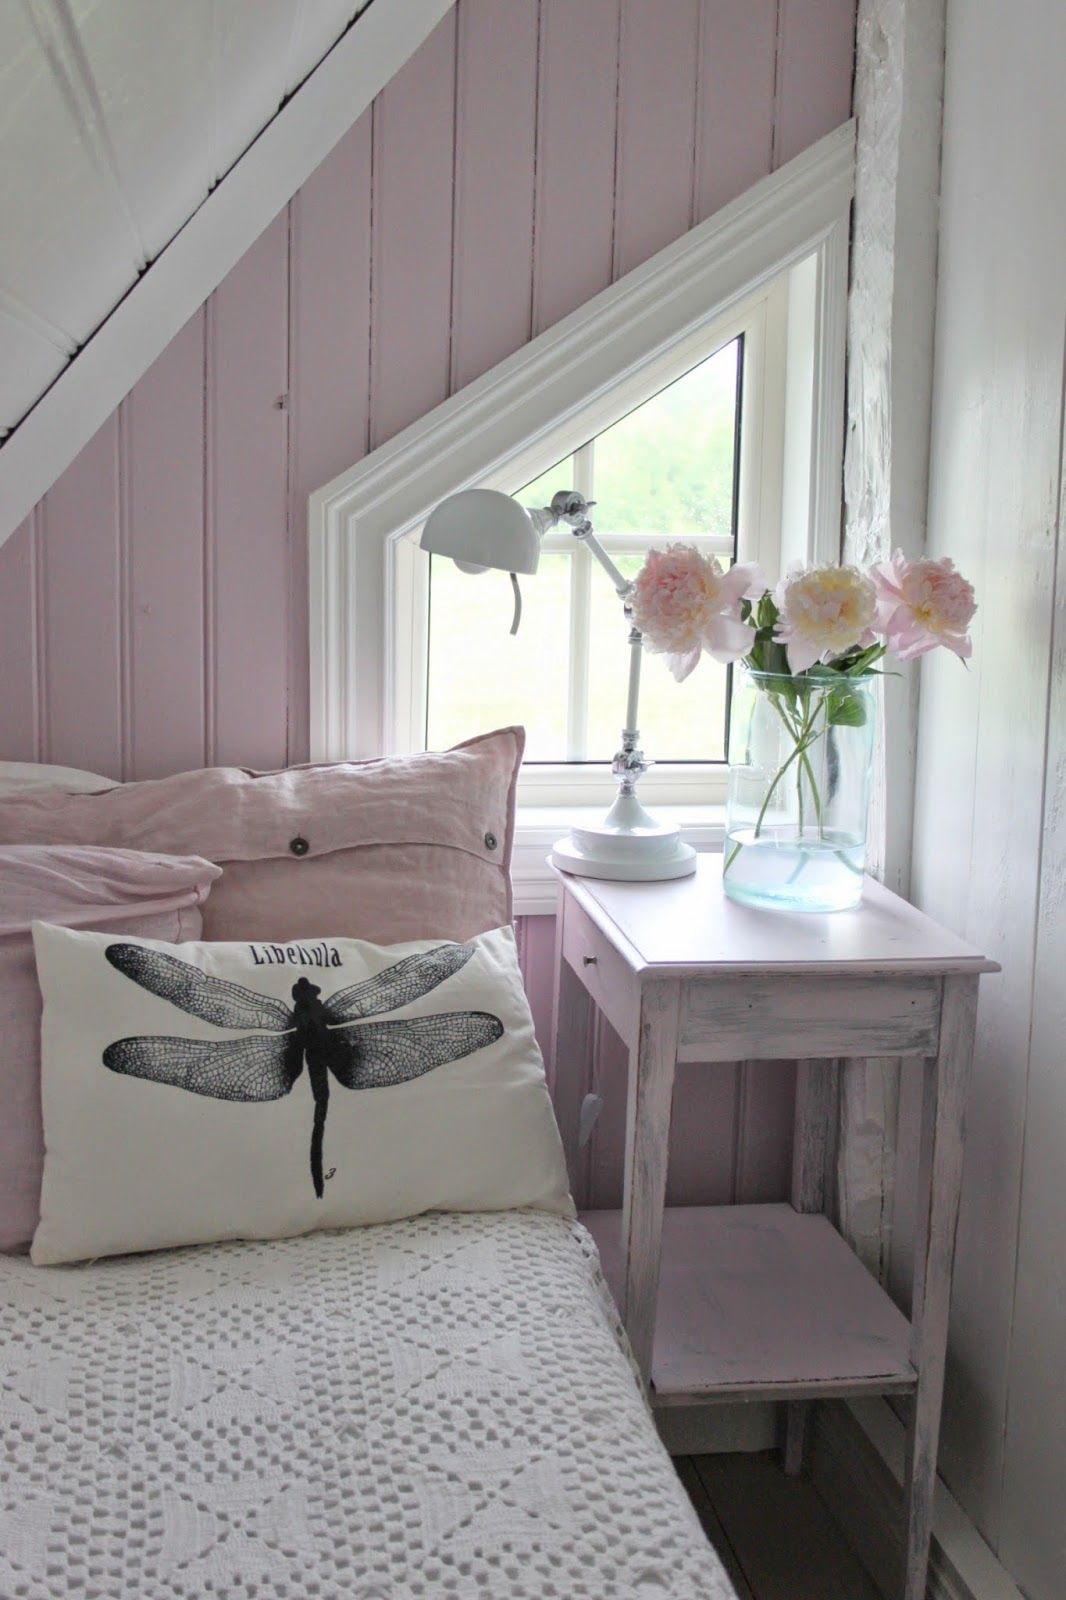 Einrichtungsideen Landhausstil Wohnzimmer So Soft And Ethereal Looking Interior Design